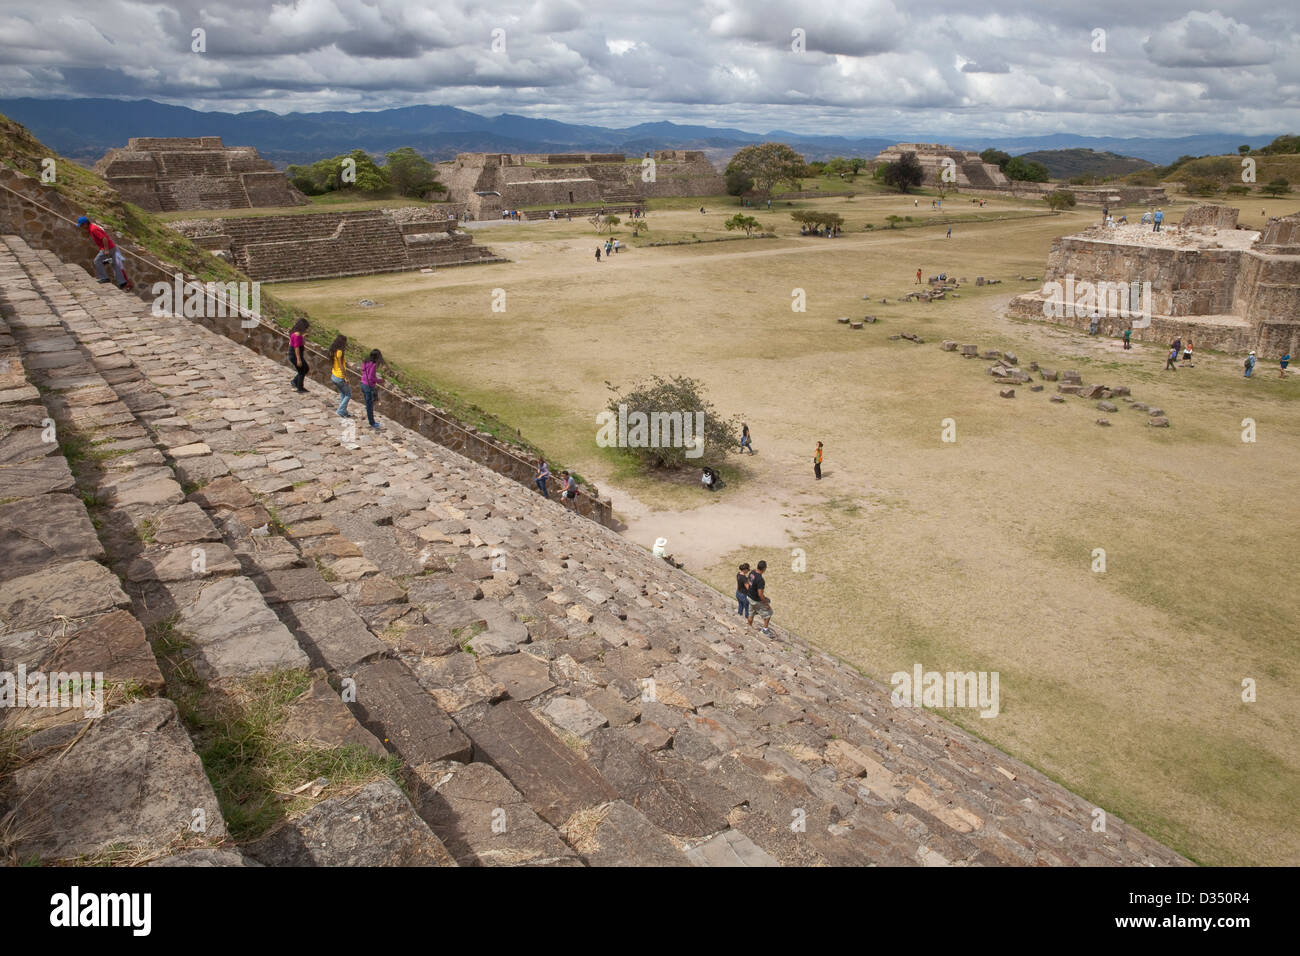 View of terraces from top of South Platform at Monte Albán, Oaxaca, Mexico. - Stock Image